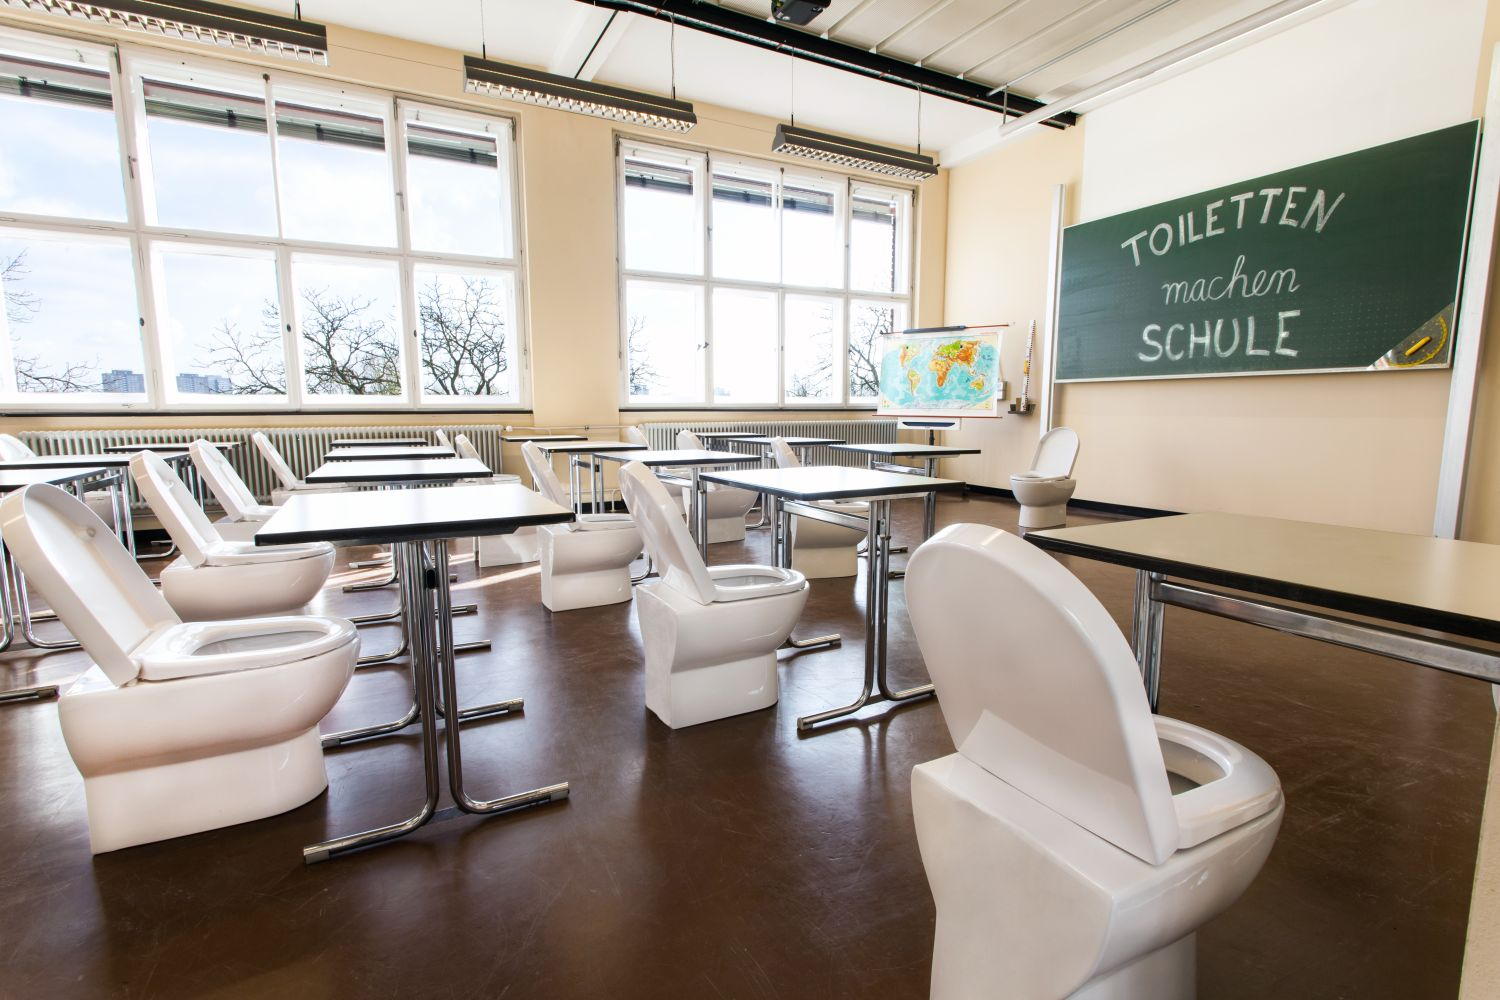 German Toilet Organization - Toiletten machen Schule